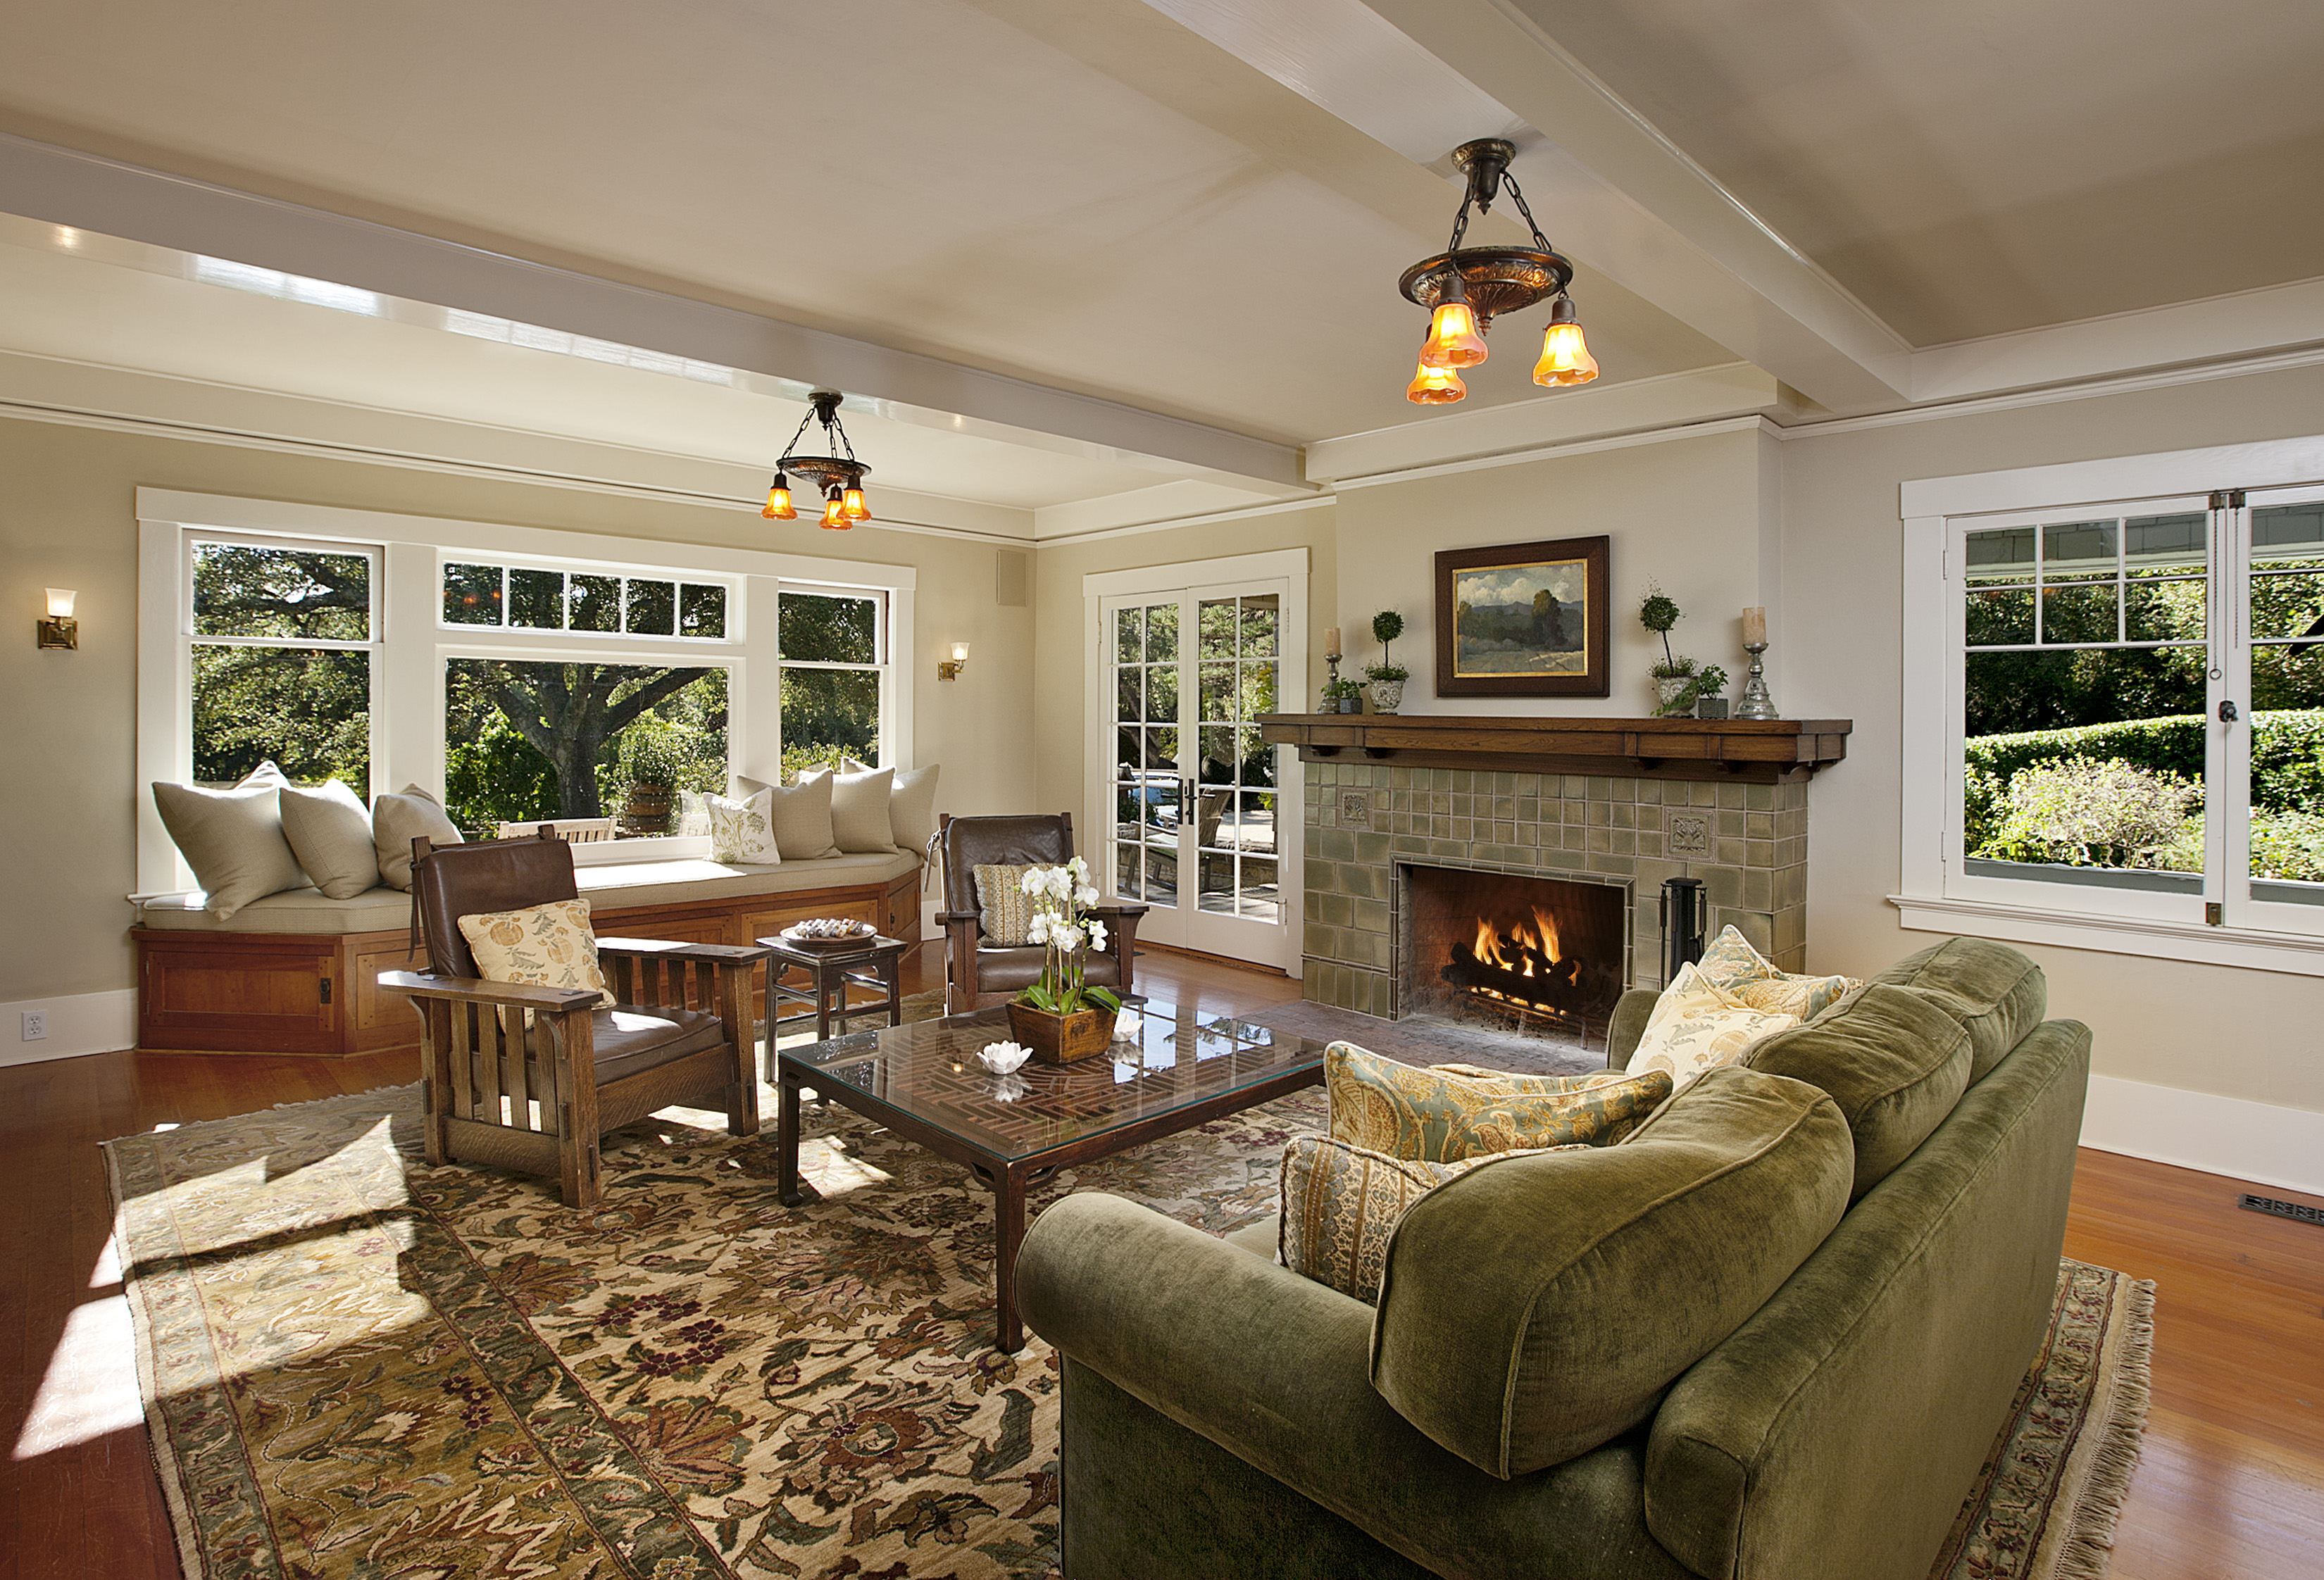 Popular home styles for 2012 montecito real estate for House interior decoration